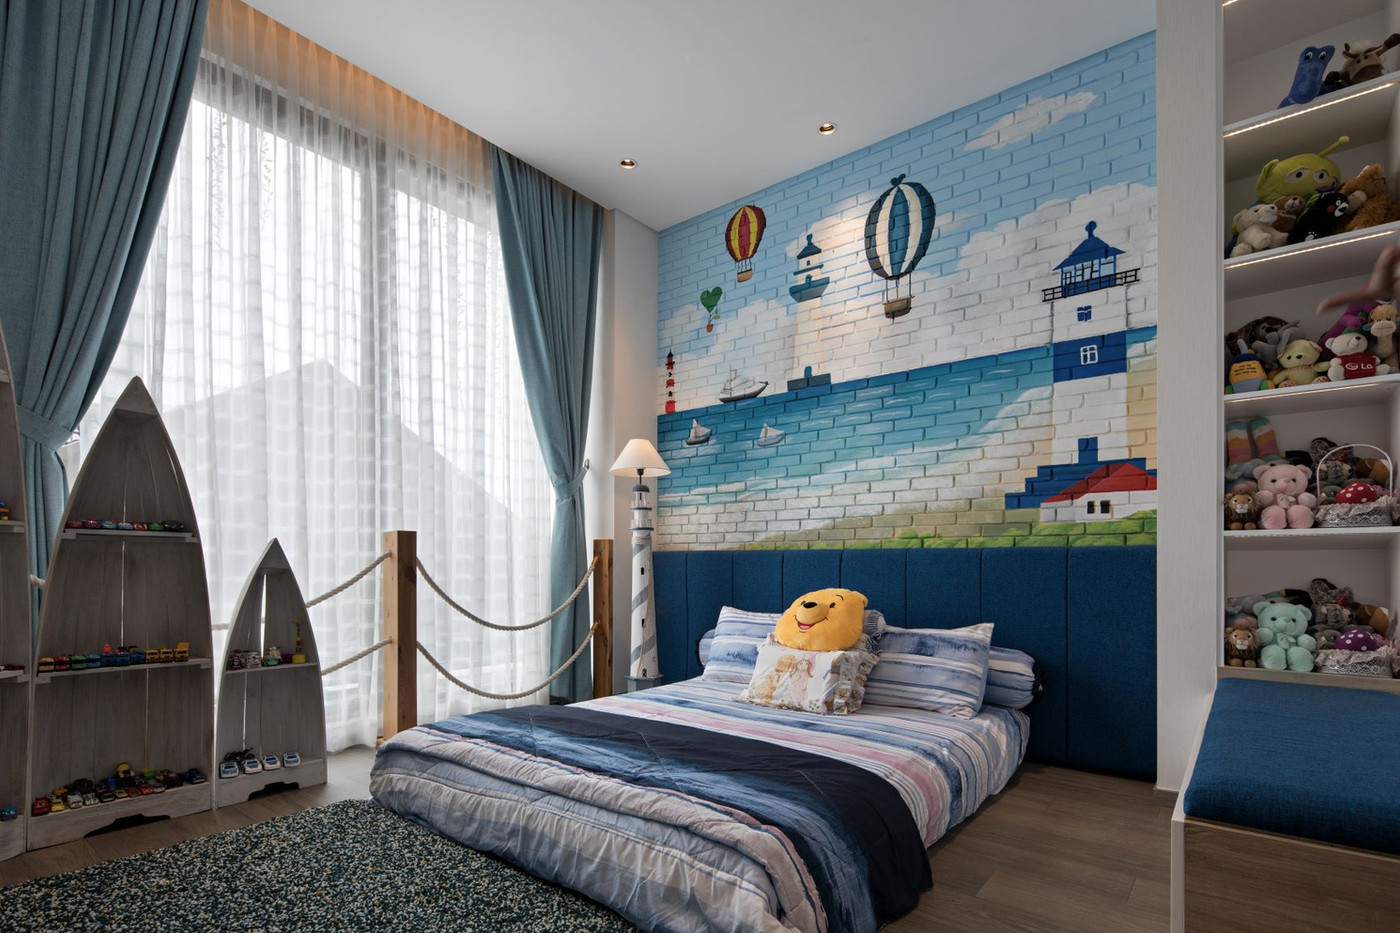 Kid's bedroom 2.jpg